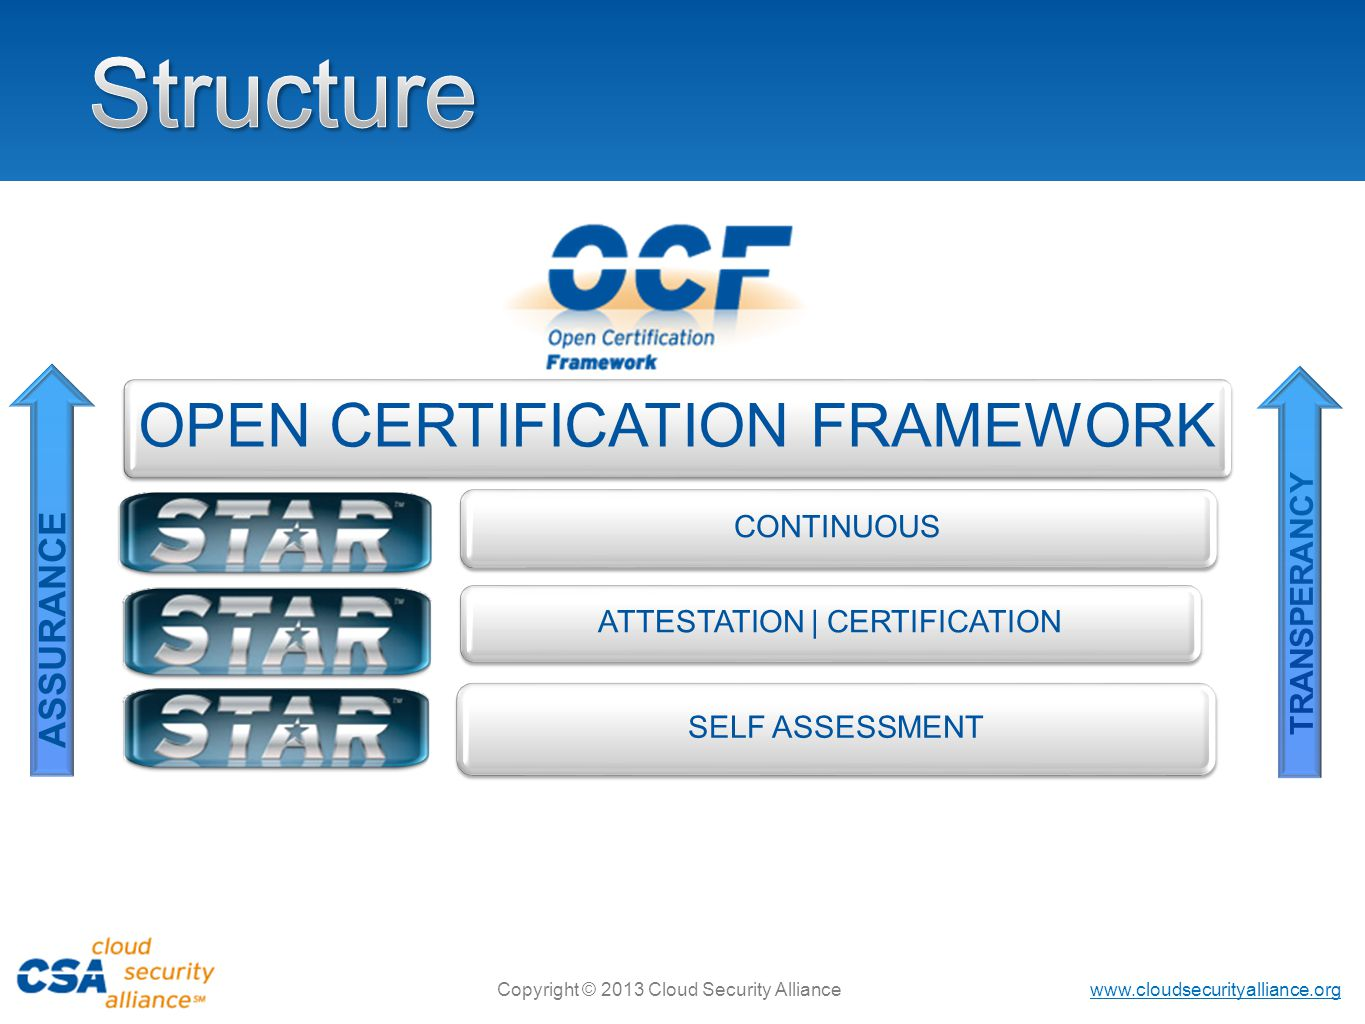 www.cloudsecurityalliance.org Copyright © 2013 Cloud Security Alliance OPEN CERTIFICATION FRAMEWORK CONTINUOUS ATTESTATION | CERTIFICATION SELF ASSESSMENT TRANSPERANCY ASSURANCE